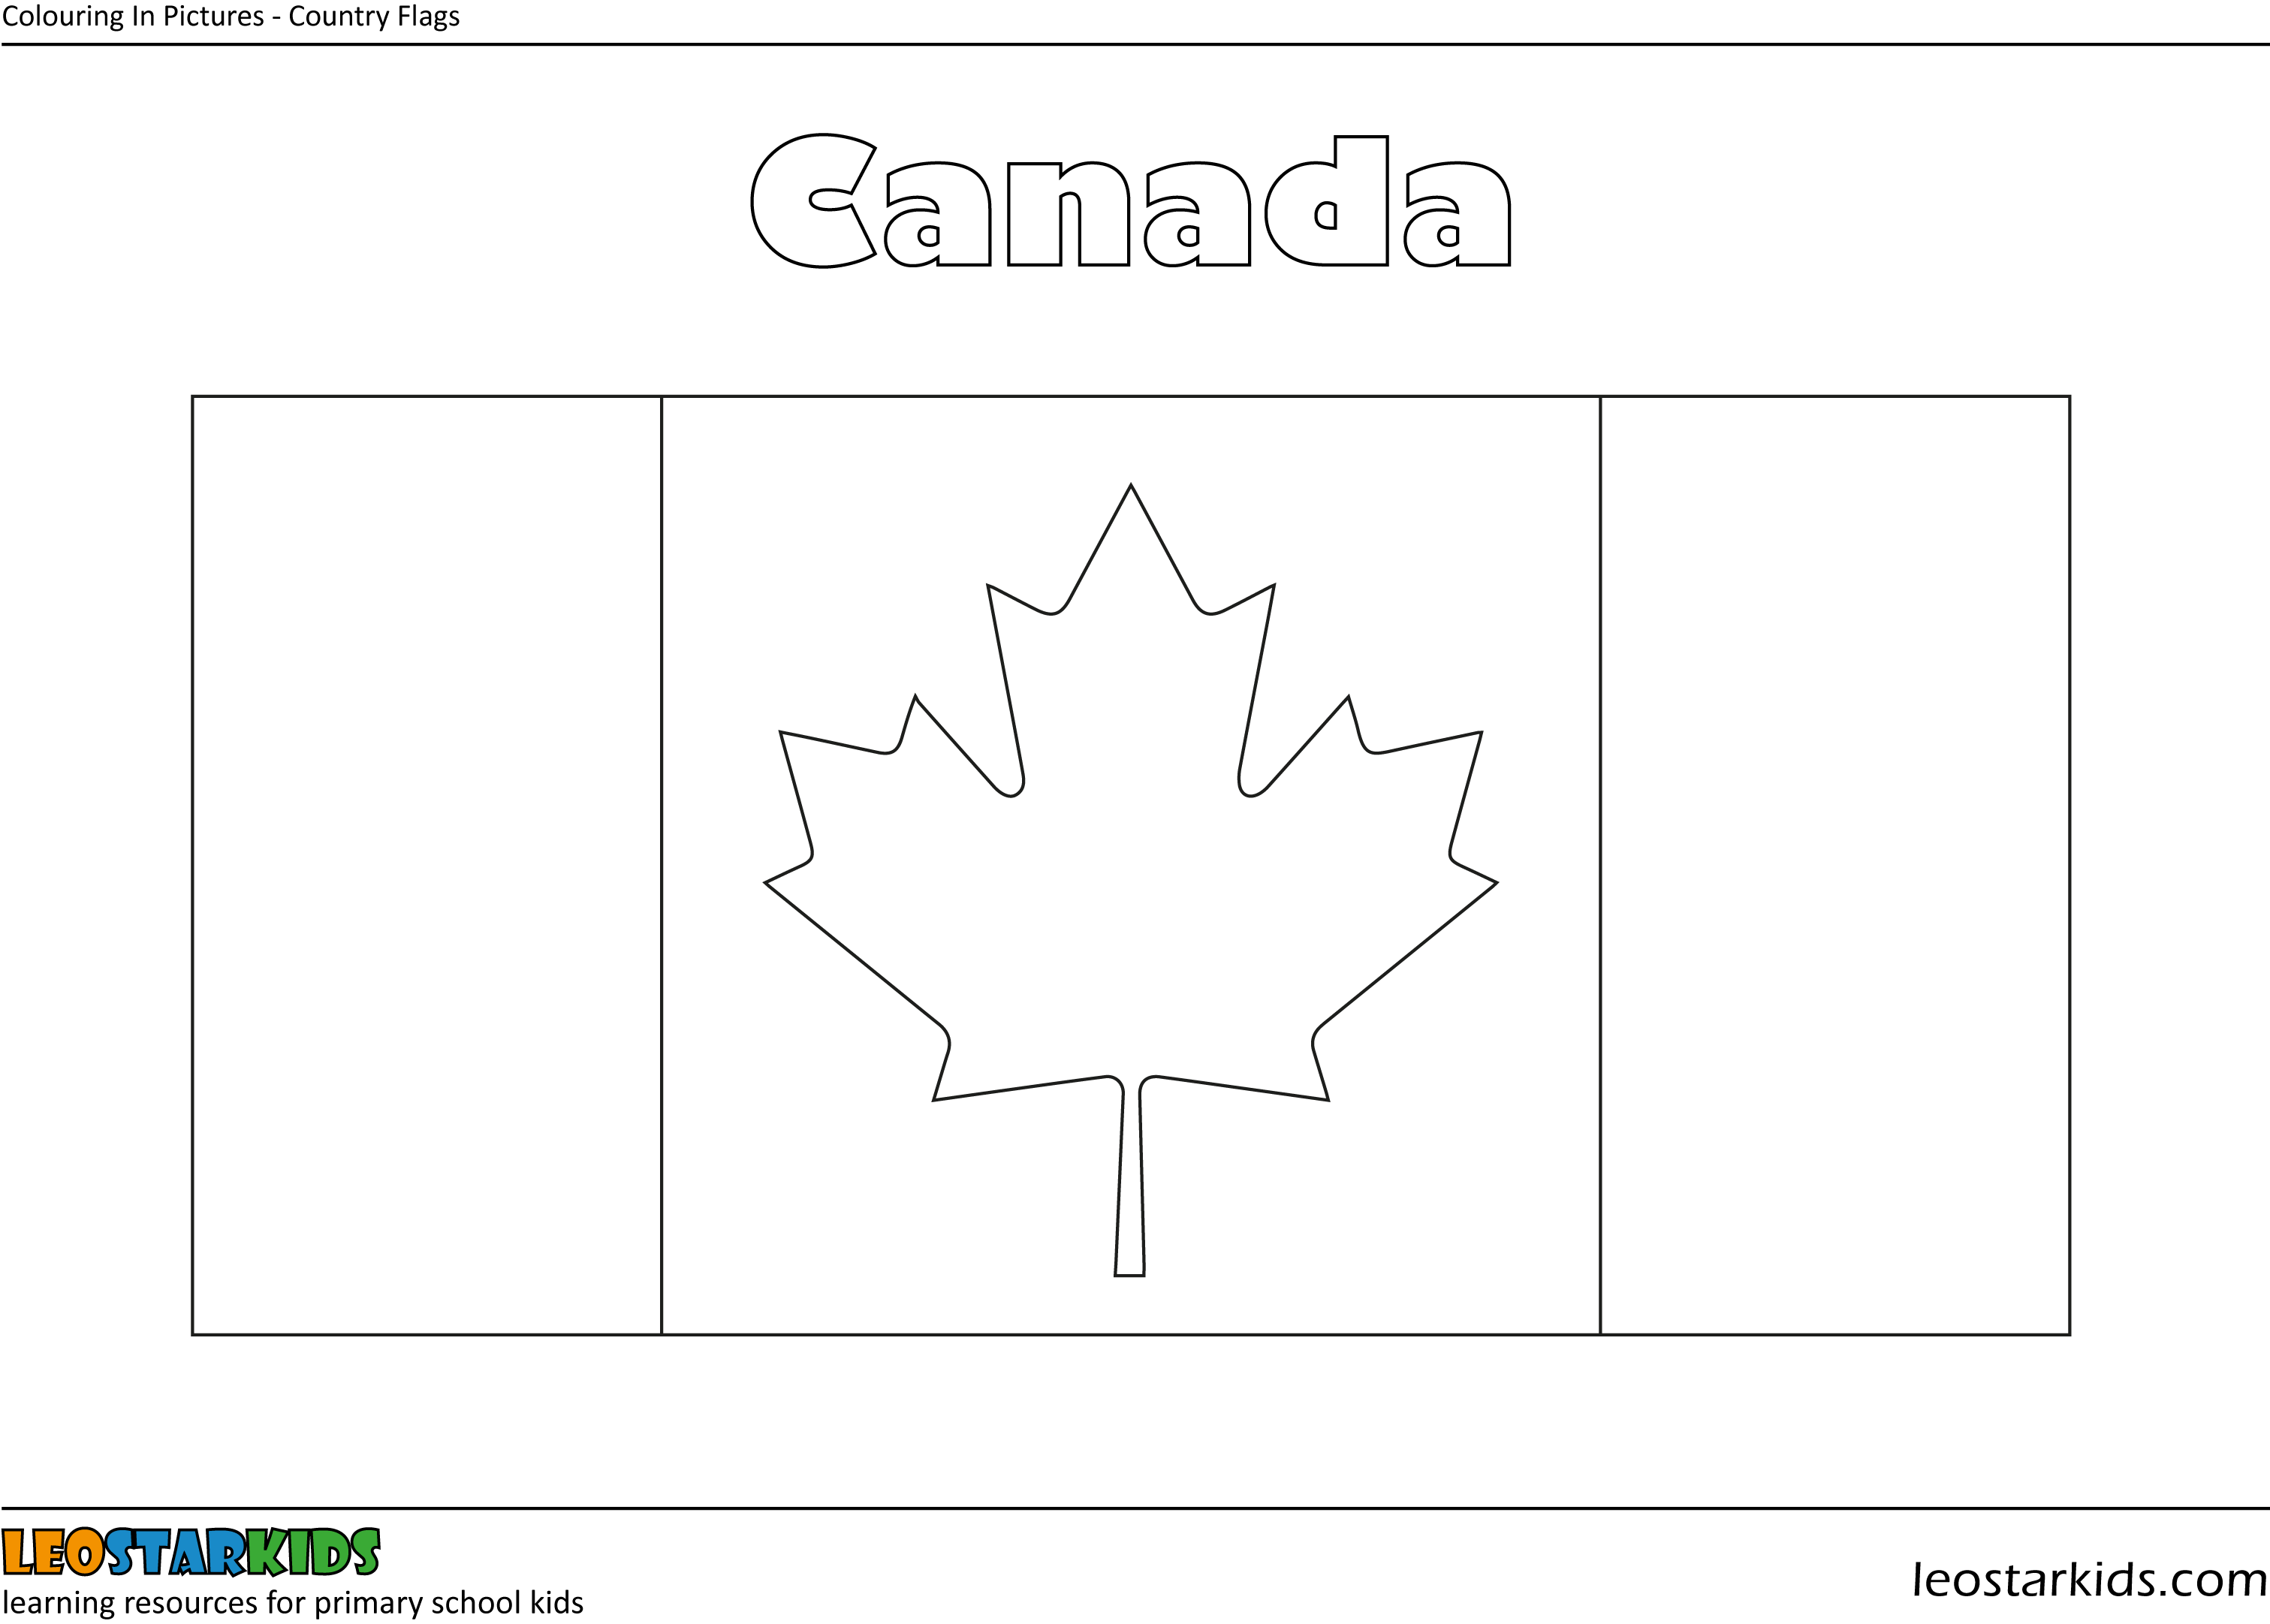 colouring in pictures national flags leostarkids